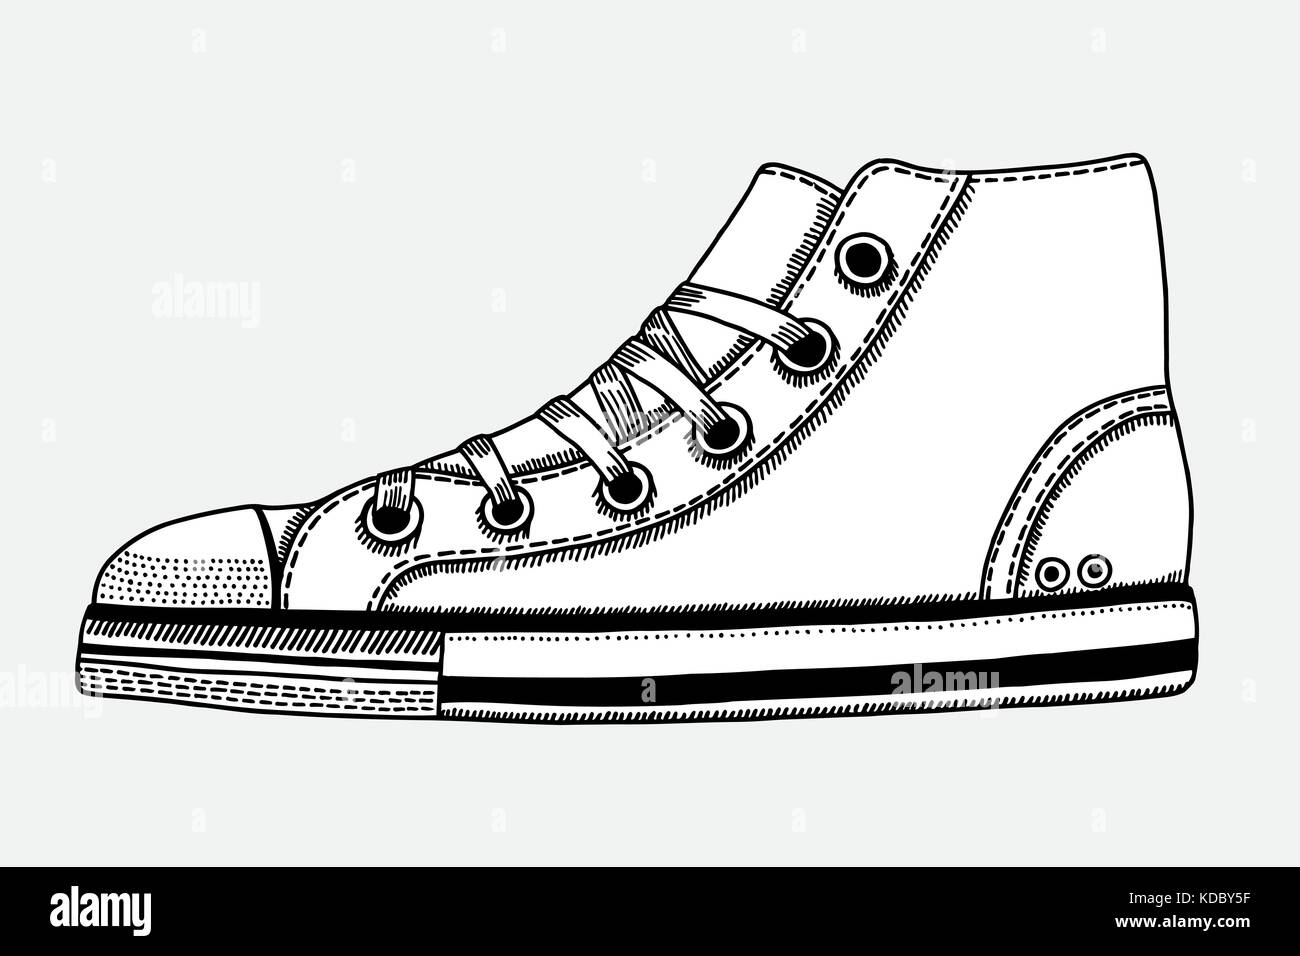 3fd7a1134df7a4 Converse Shoes Stock Vector Images - Alamy